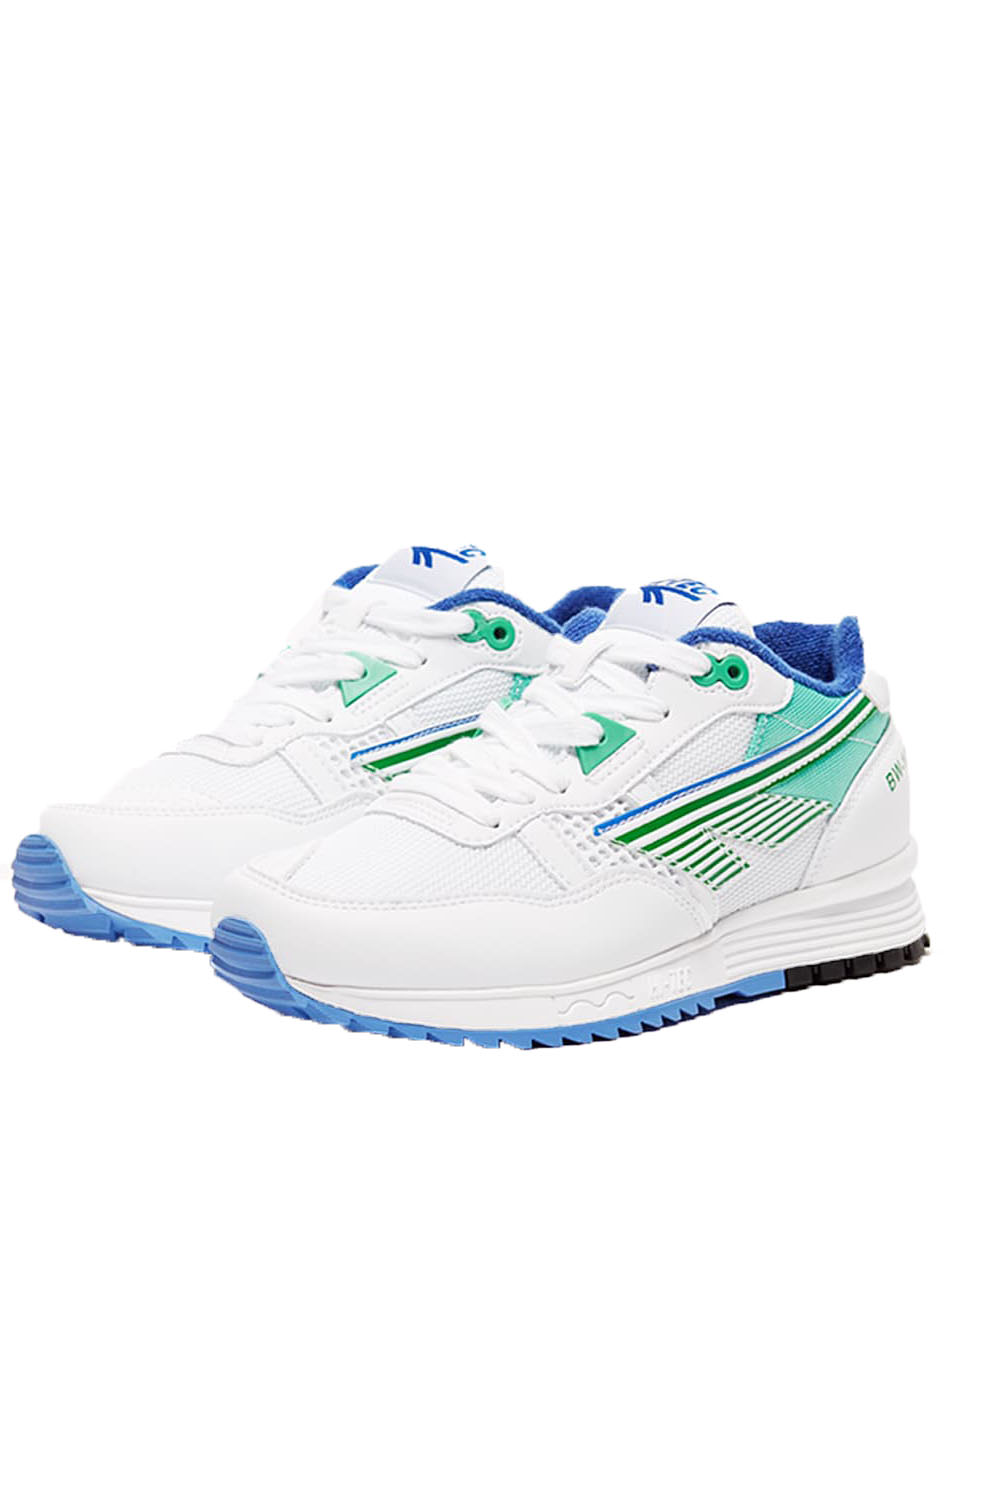 Hi-Tec-Unisex-Badwater-146-Retro-Trainers-Lace-Up-Running-Sport-Low-Top-Sneakers thumbnail 4